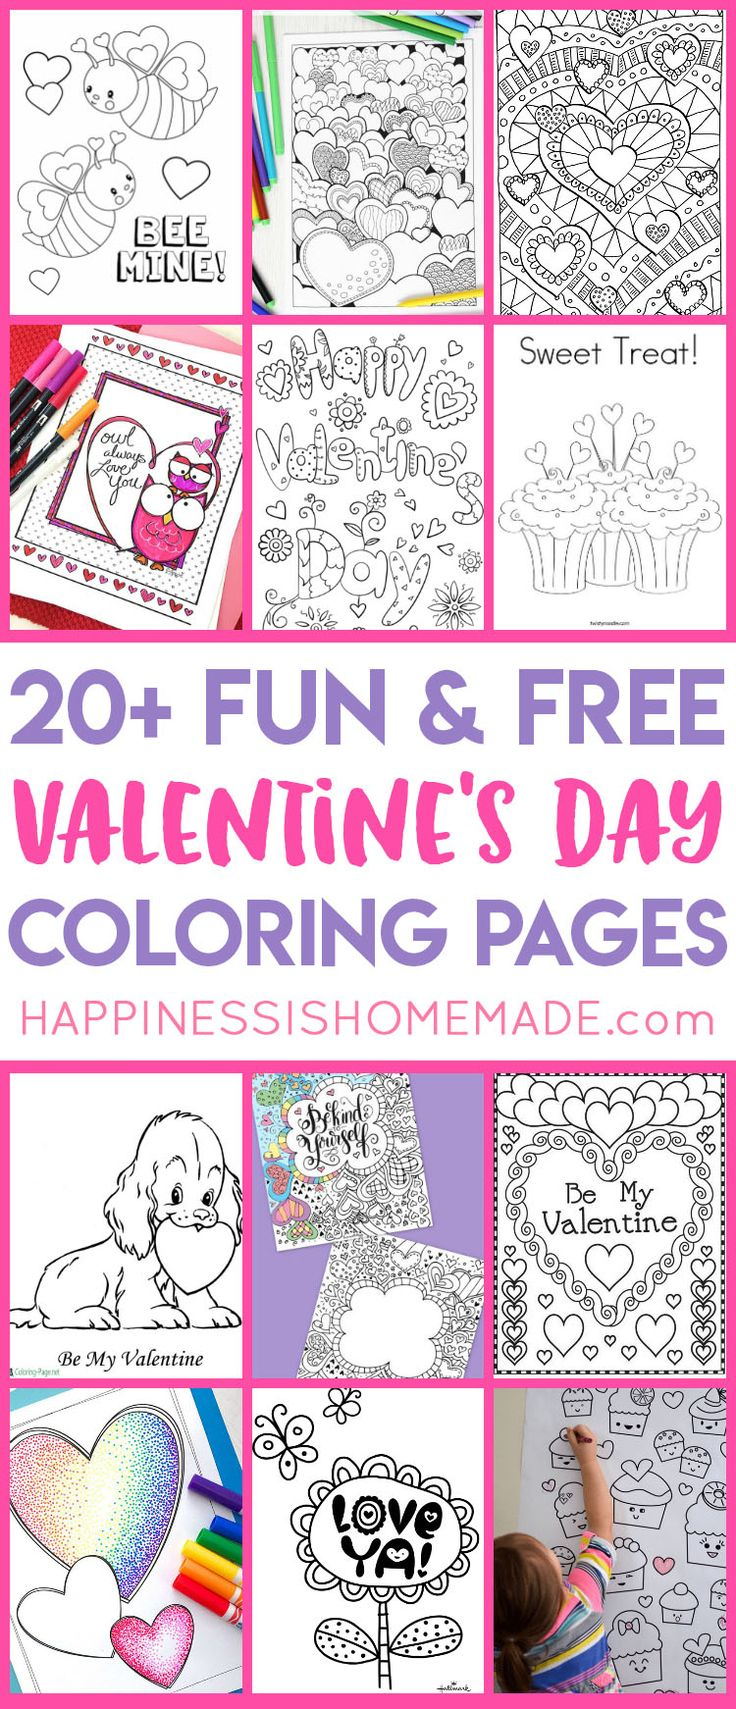 Looking for free printable Valentines Coloring Pages? These sweet Valentine's Day coloring pages for kids and adults are fun for all ages!